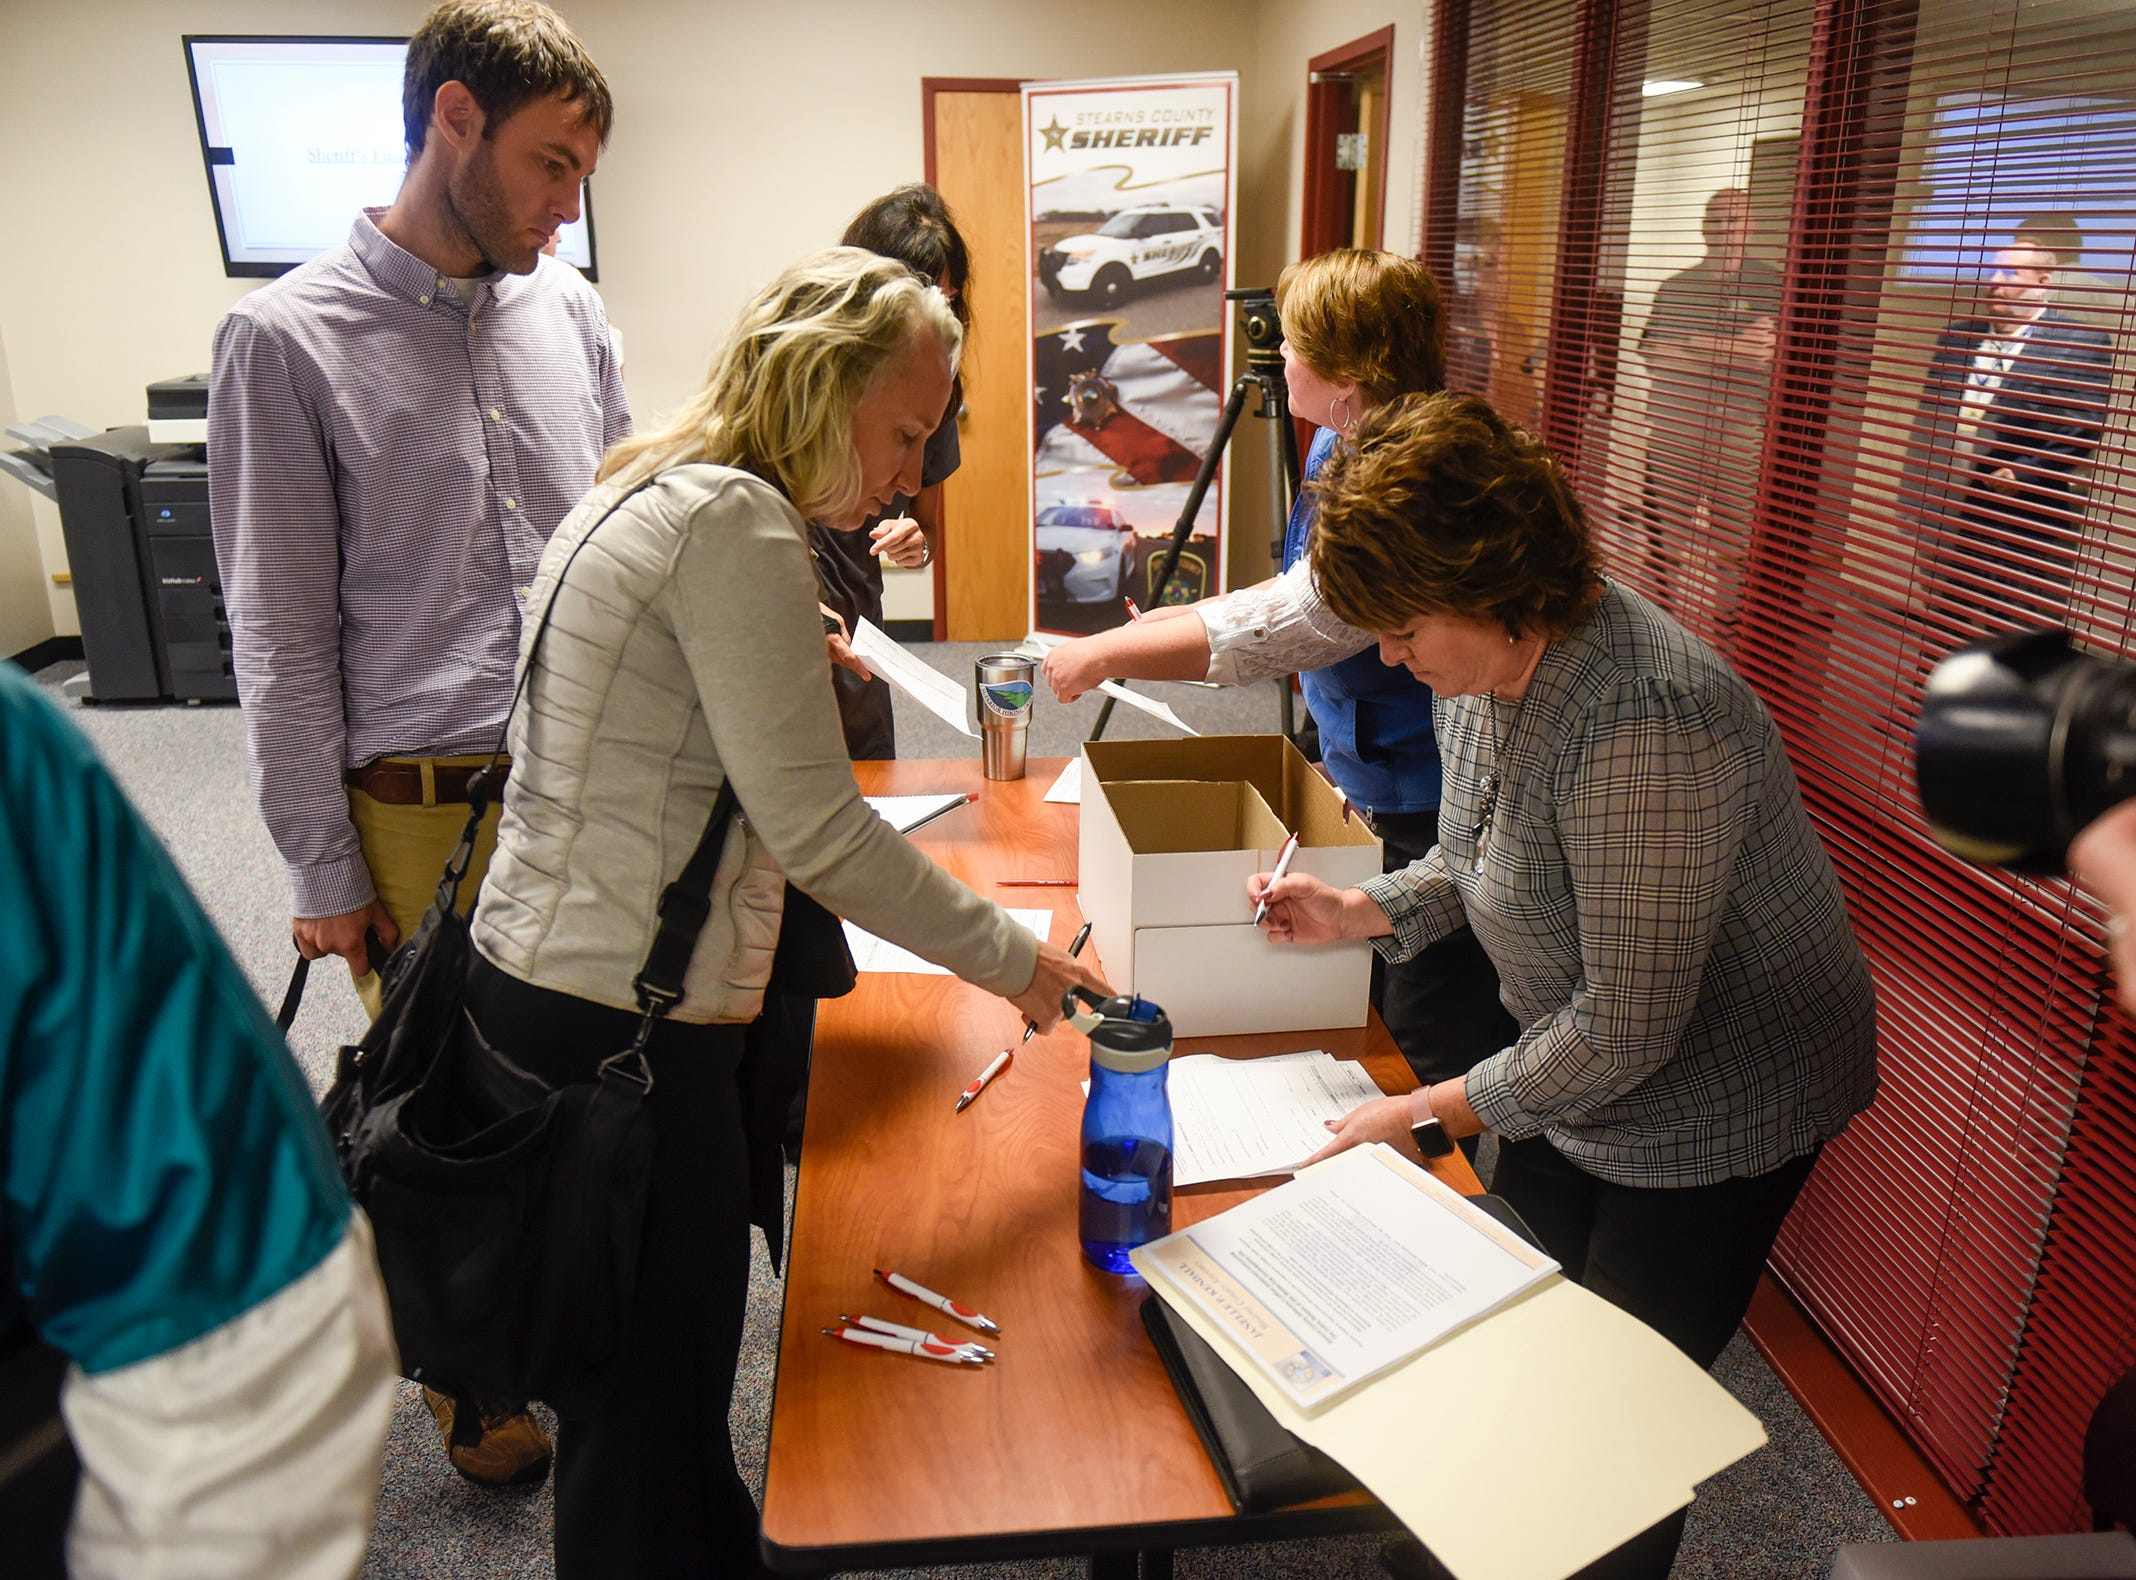 Drives containing files in the Jacob Wetterling case are handed out following a press conference for the release of the information Thursday, Sept. 20, 2018, in St. Cloud.